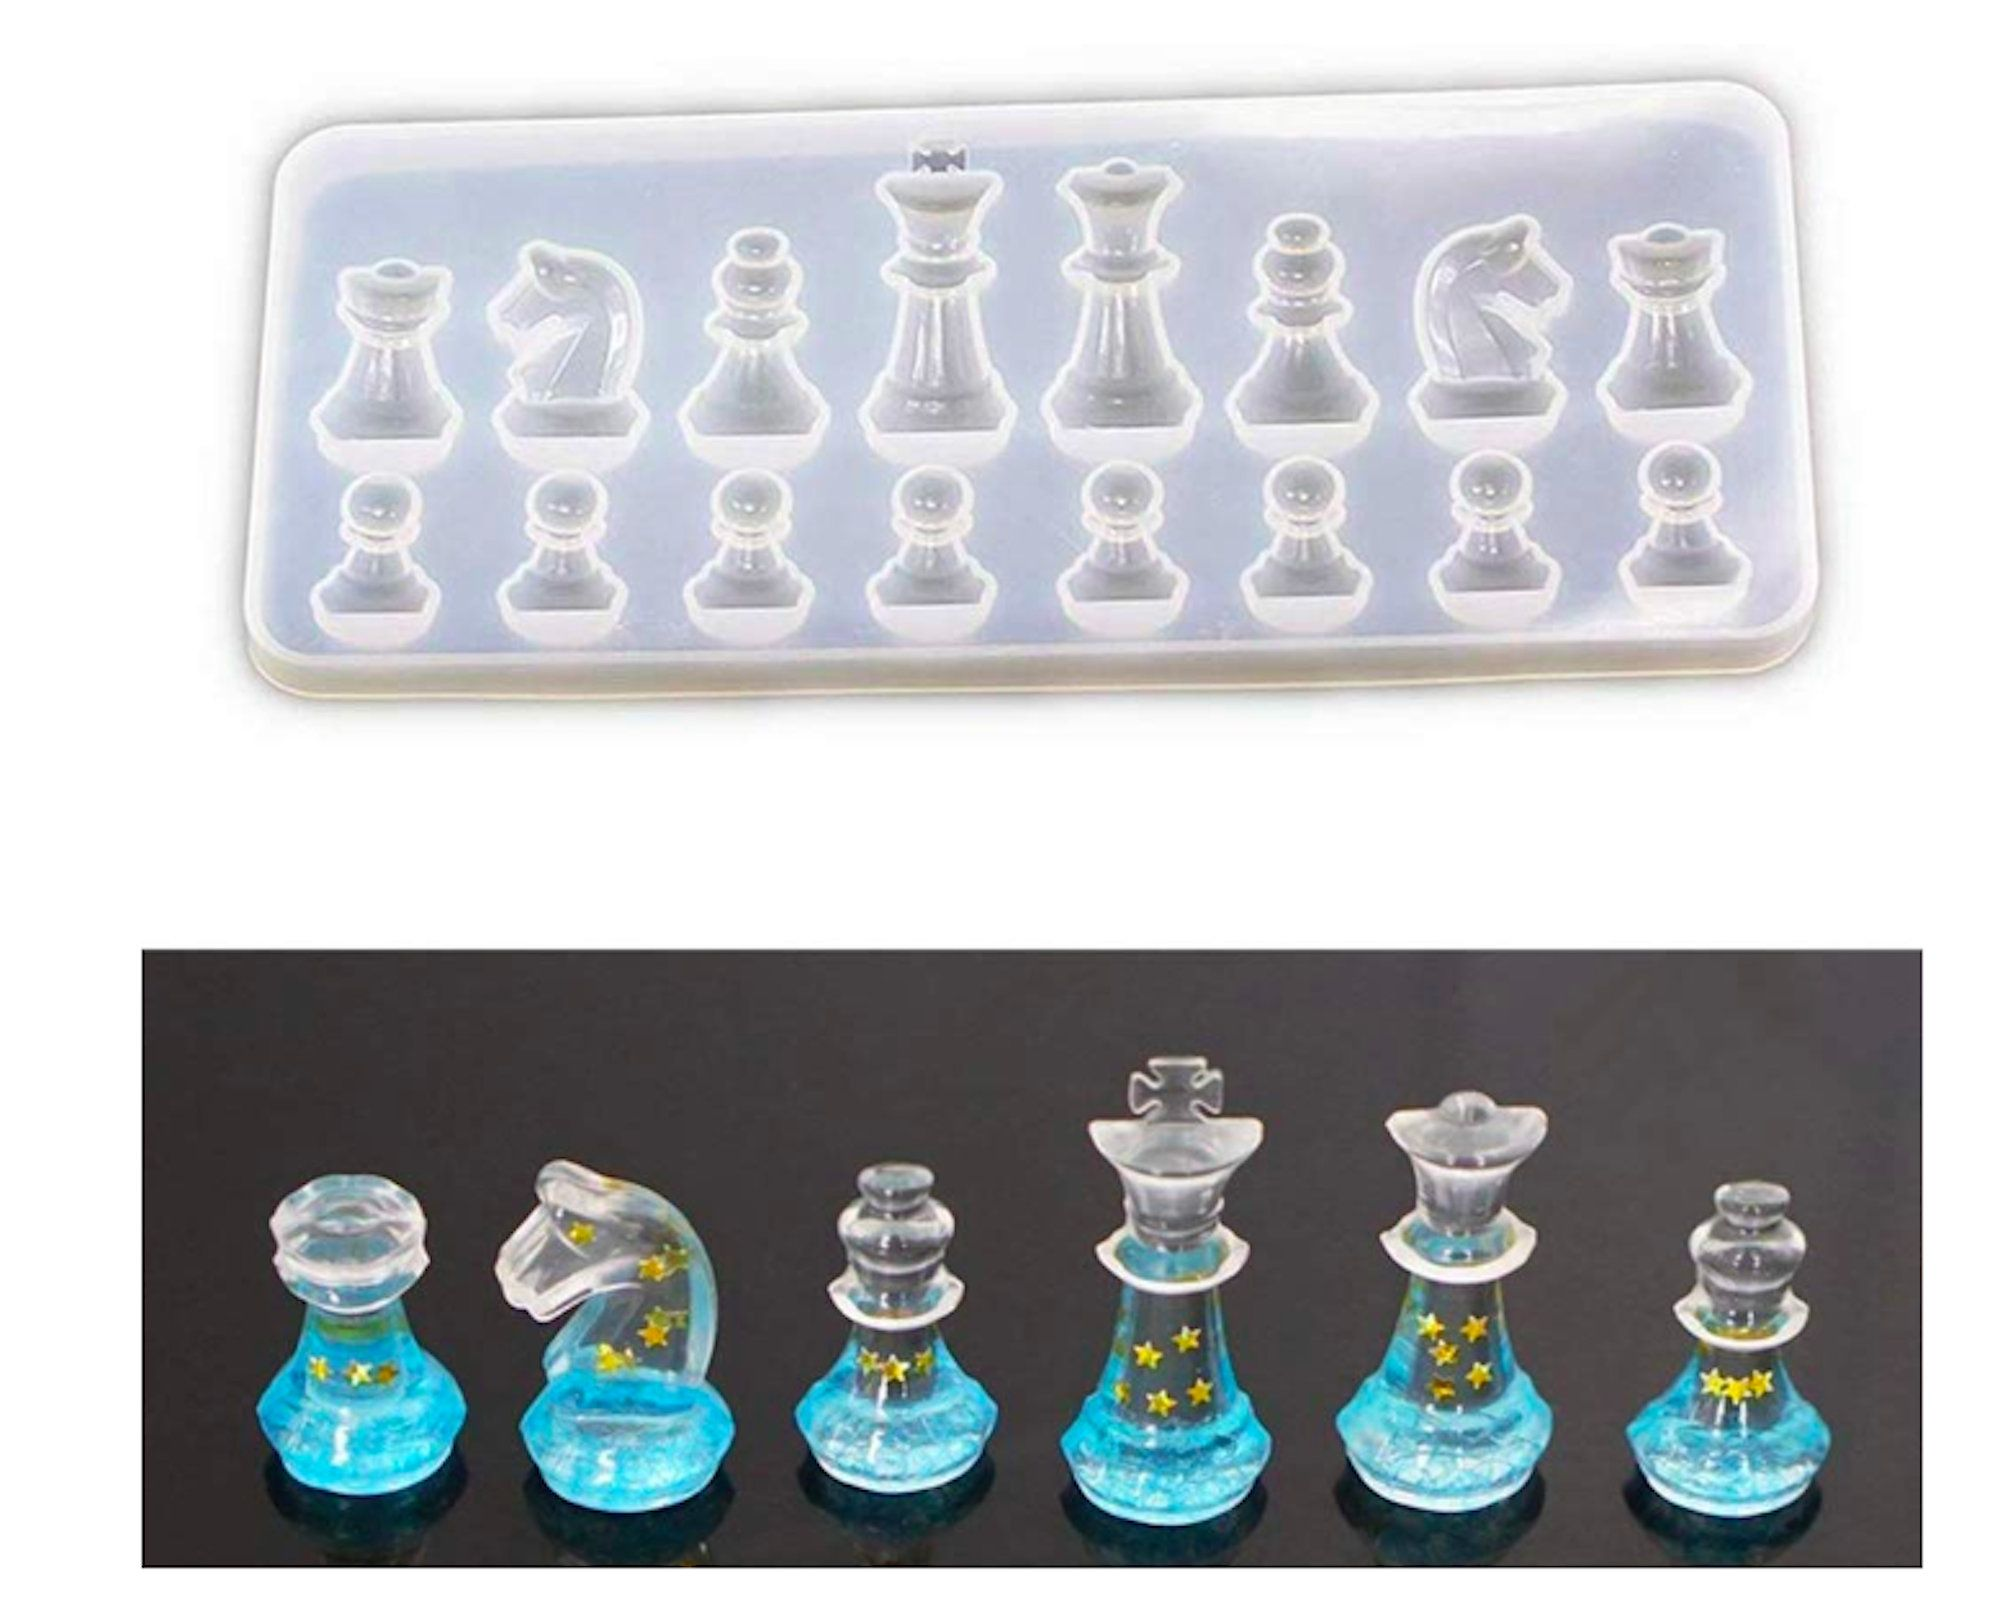 Chess Set Silicone Mold Jewelry Making Epoxy Mould Handmade Crafting Tool Mystic